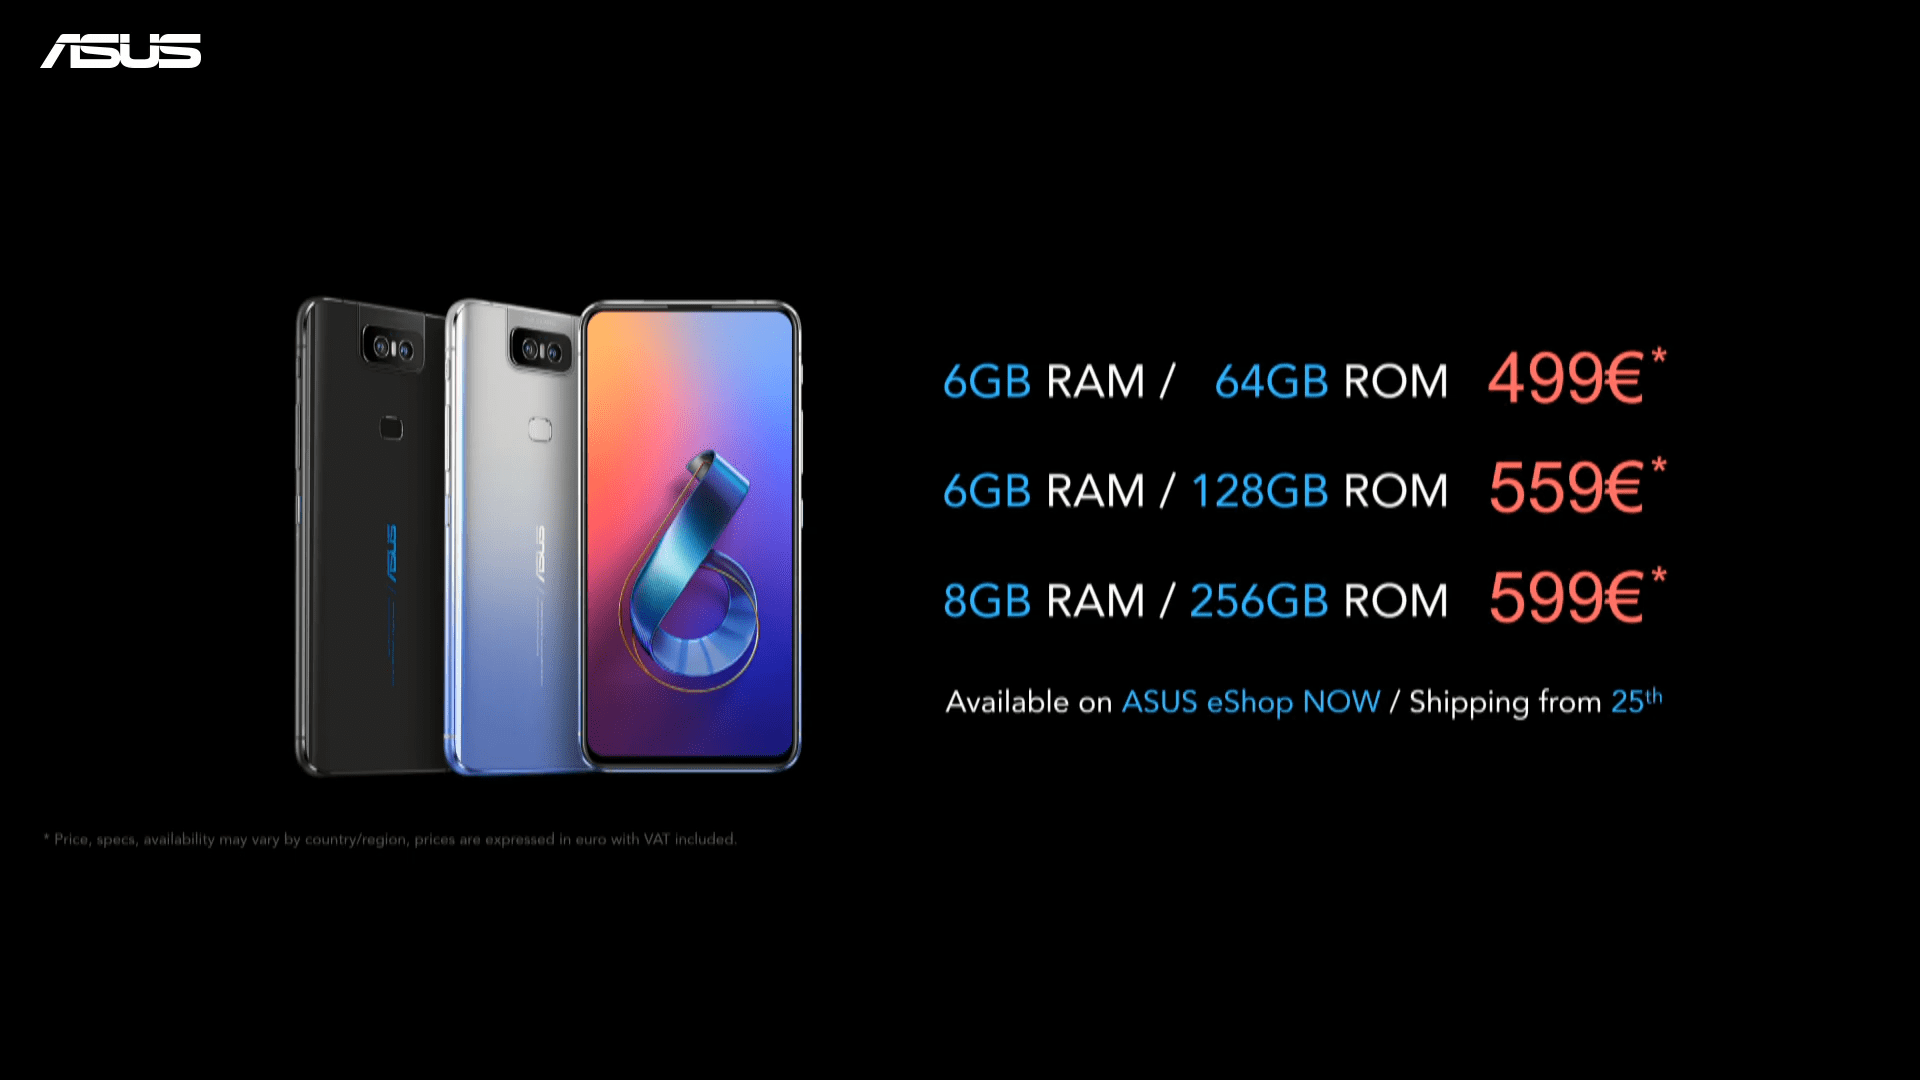 ZenFone 6 Grand Launch - Defy Ordinary _ ASUS 1-15-18 screenshot.png